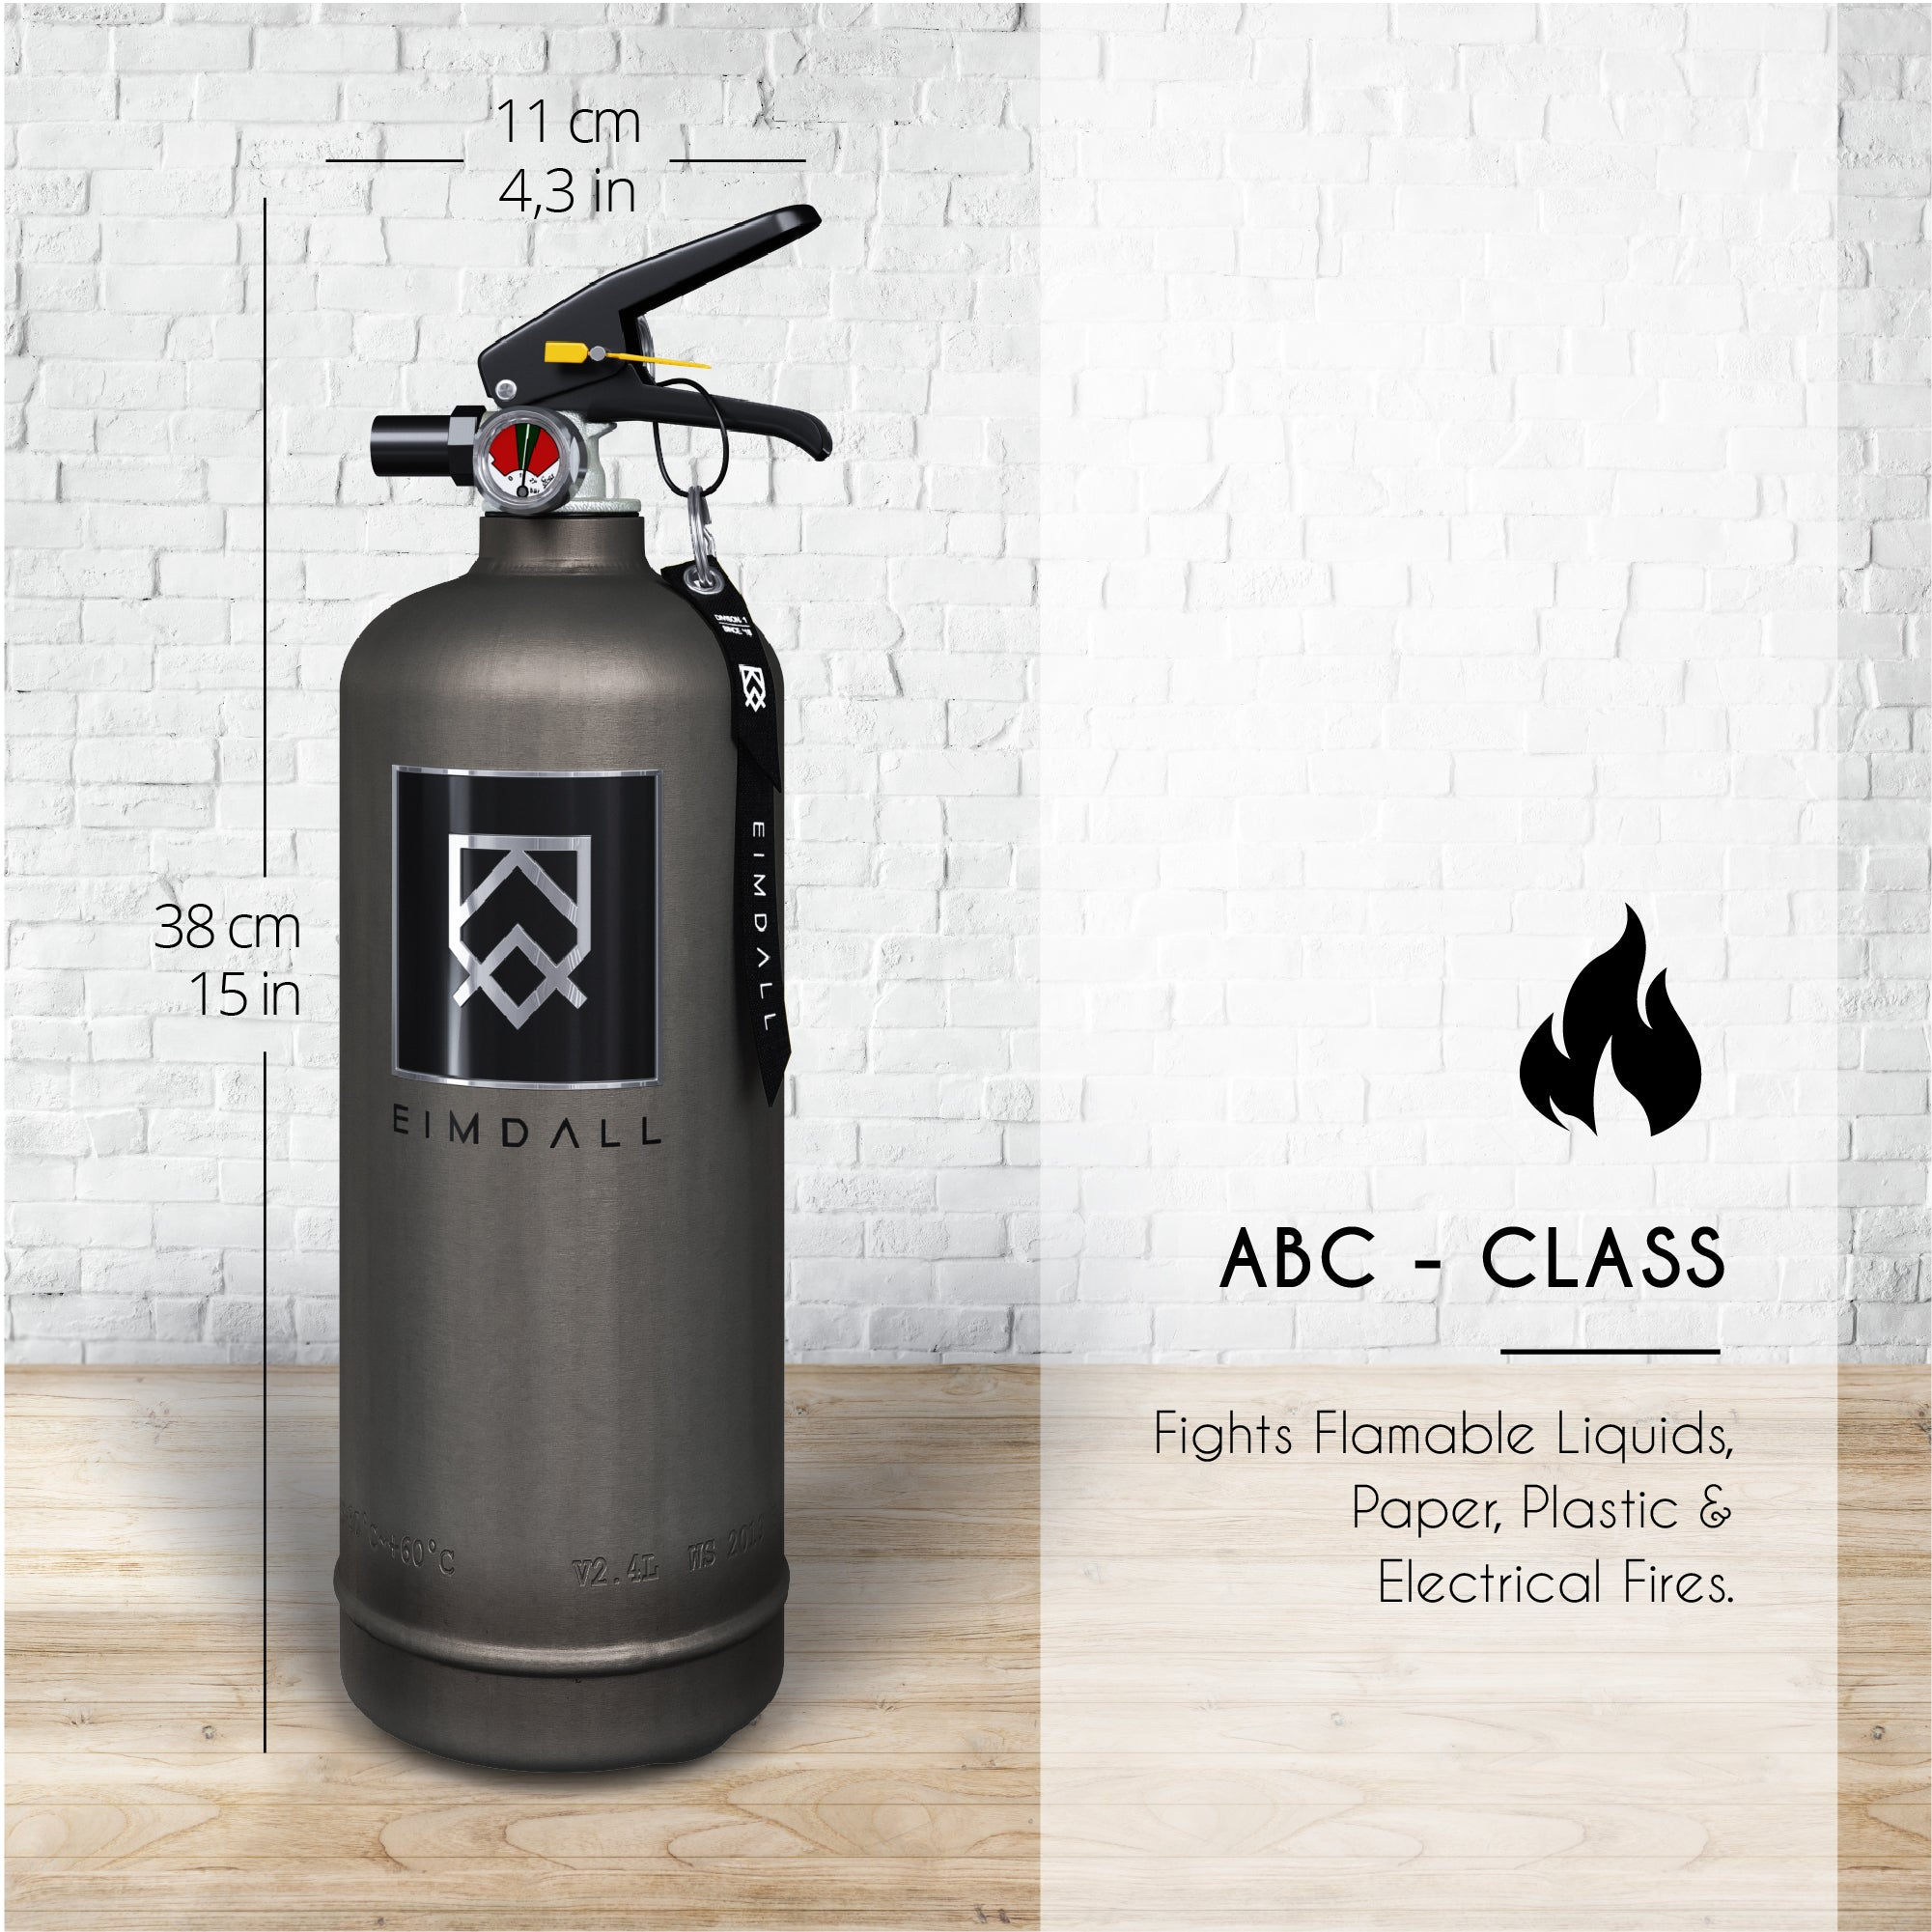 BALDER - Rust/Industrial 2 kg Design Fire Extinguisher